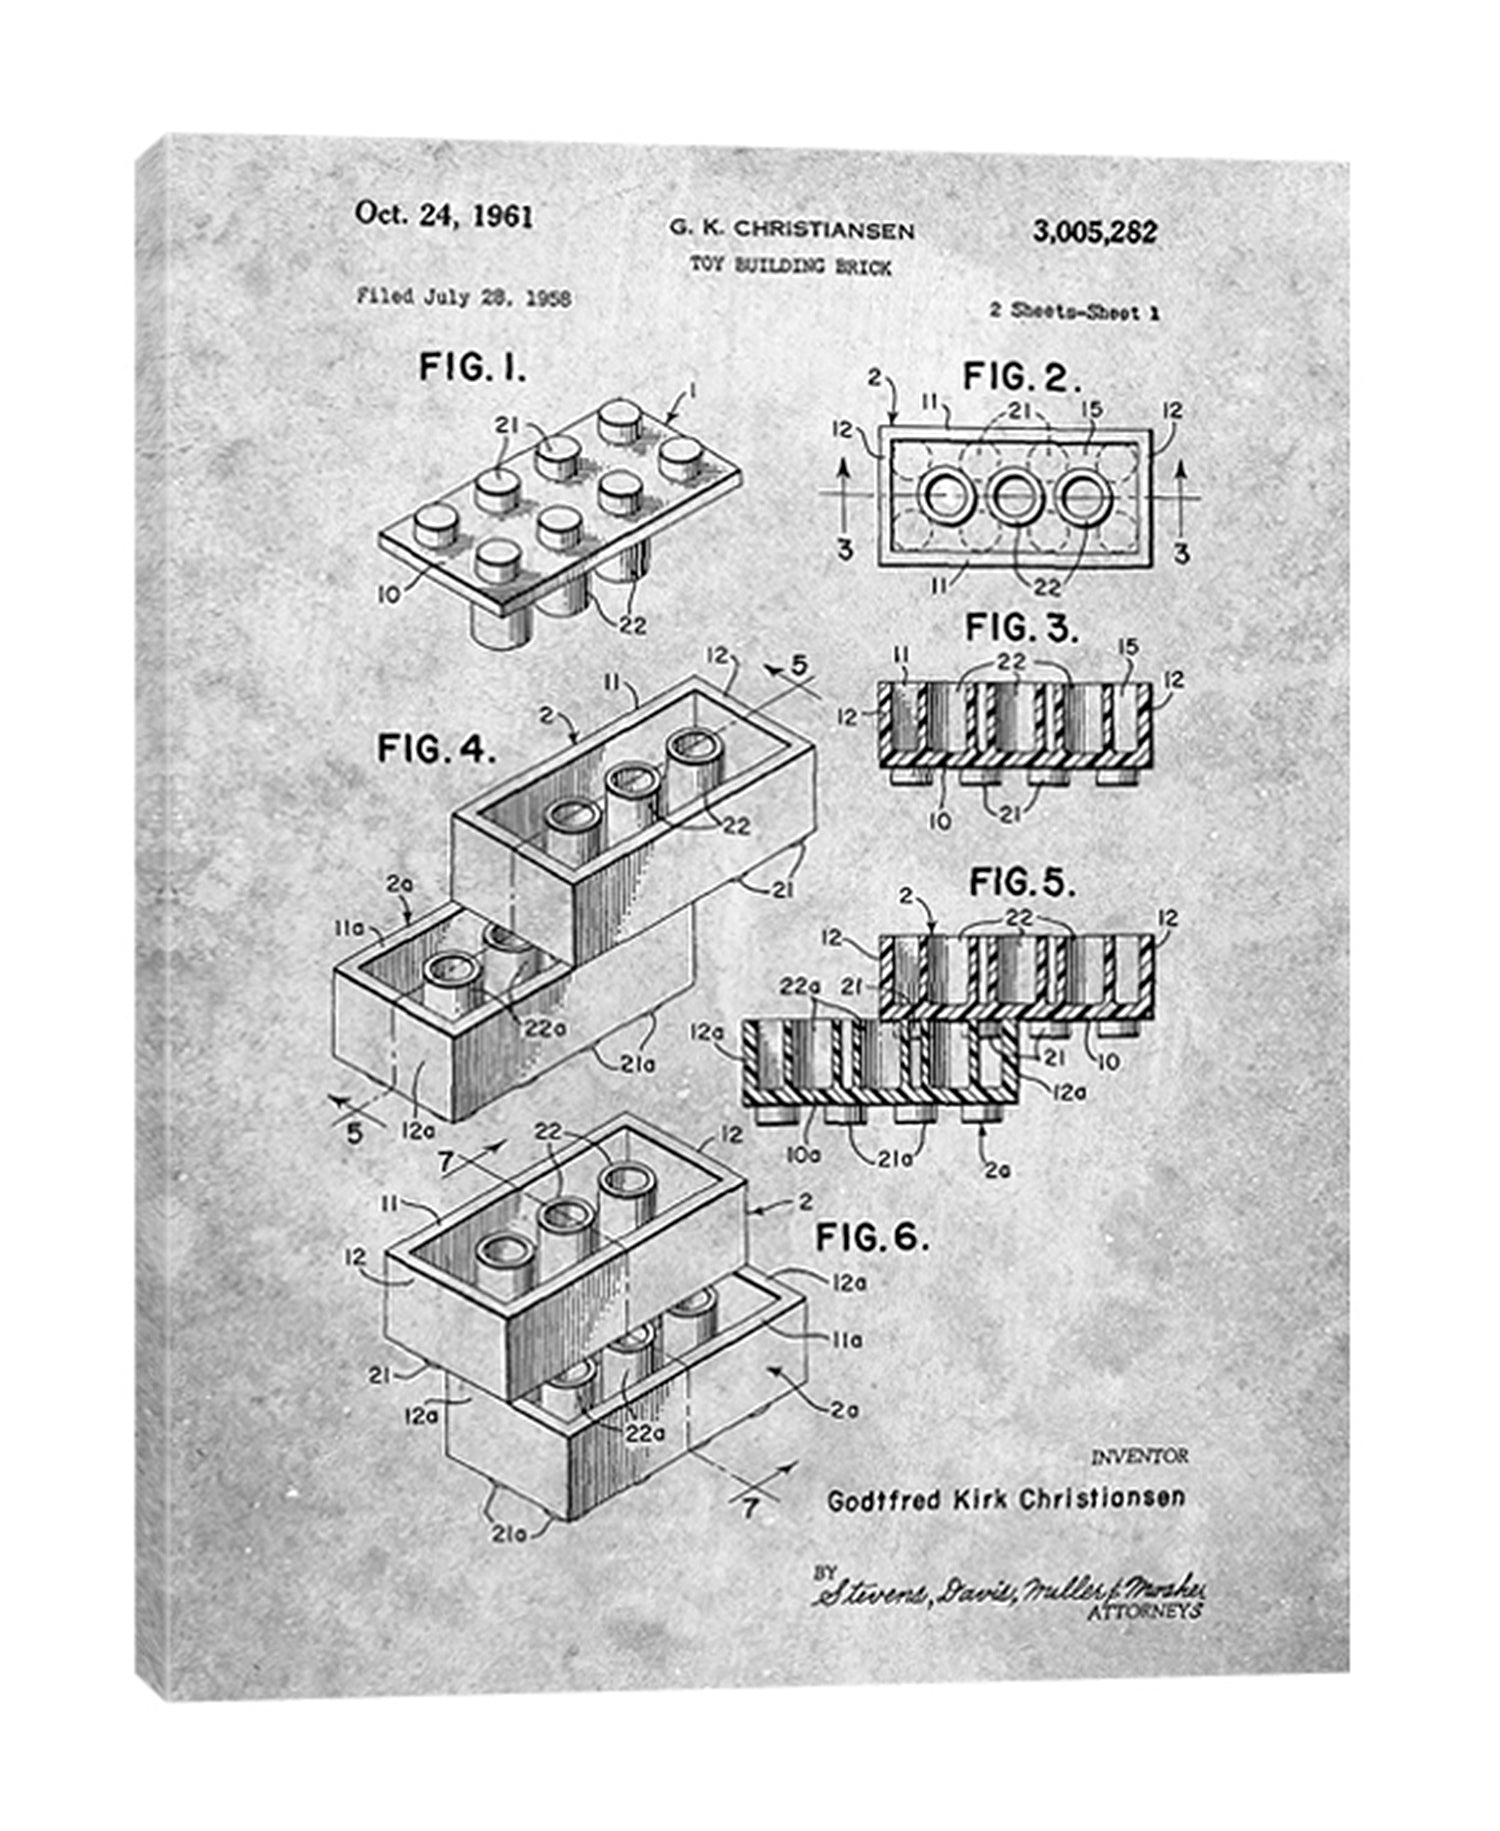 Cole-Borders,Modern & Contemporary,Entertainment,toy brick,bricks,toy building bricks,patented,blueprint,words and phrases,drawing,sketches,Purple,Charcoal Gray,White,Gray